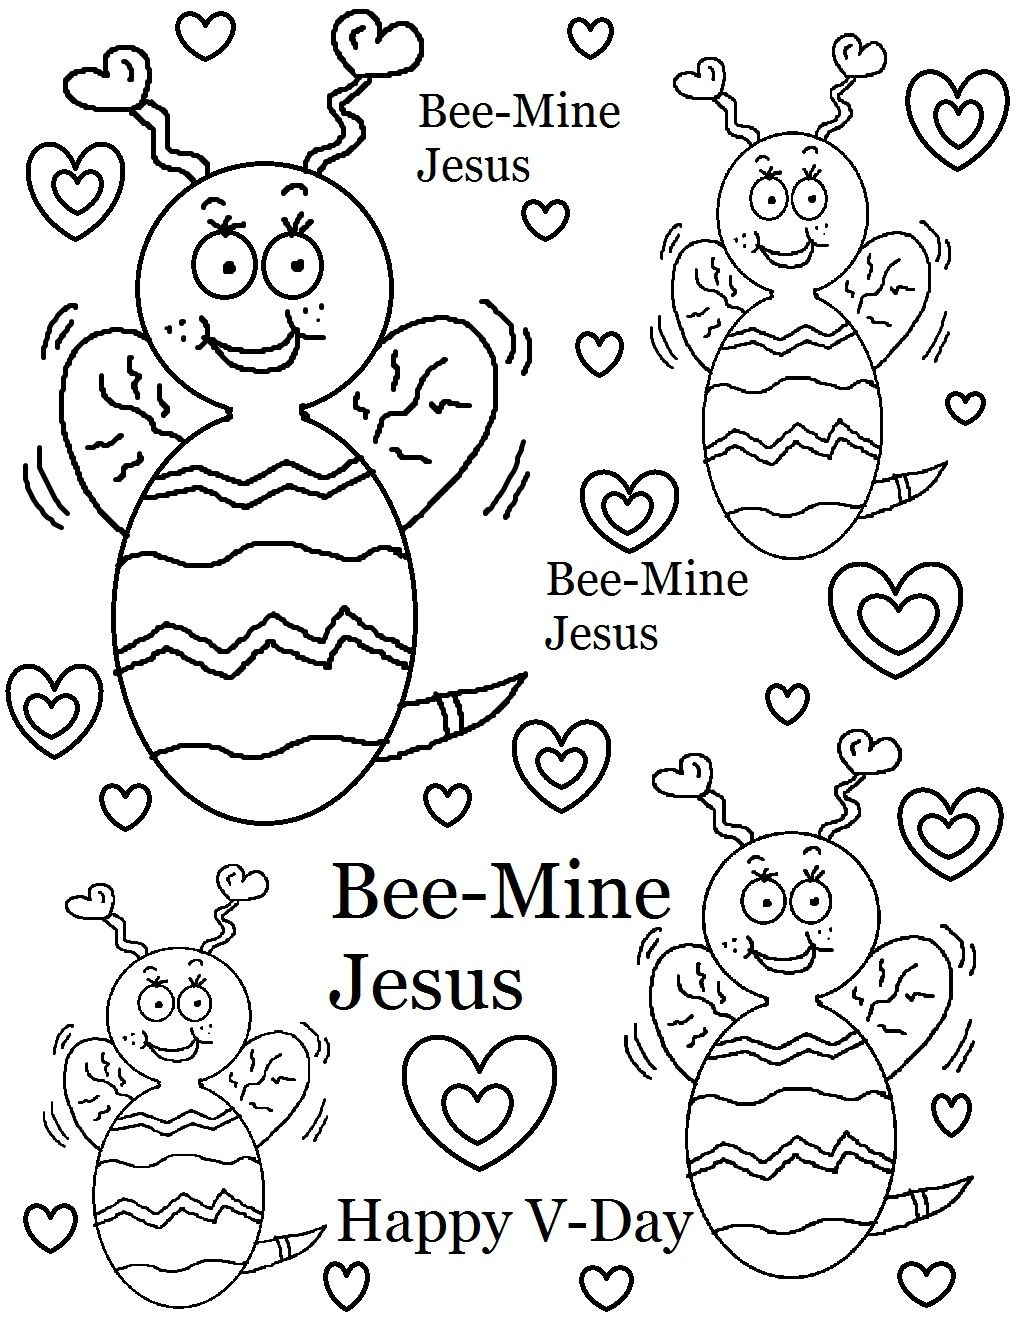 Childrens christian valentine coloring pages - Bee Mine Valentine Coloring Pages Bee Mine Jesus